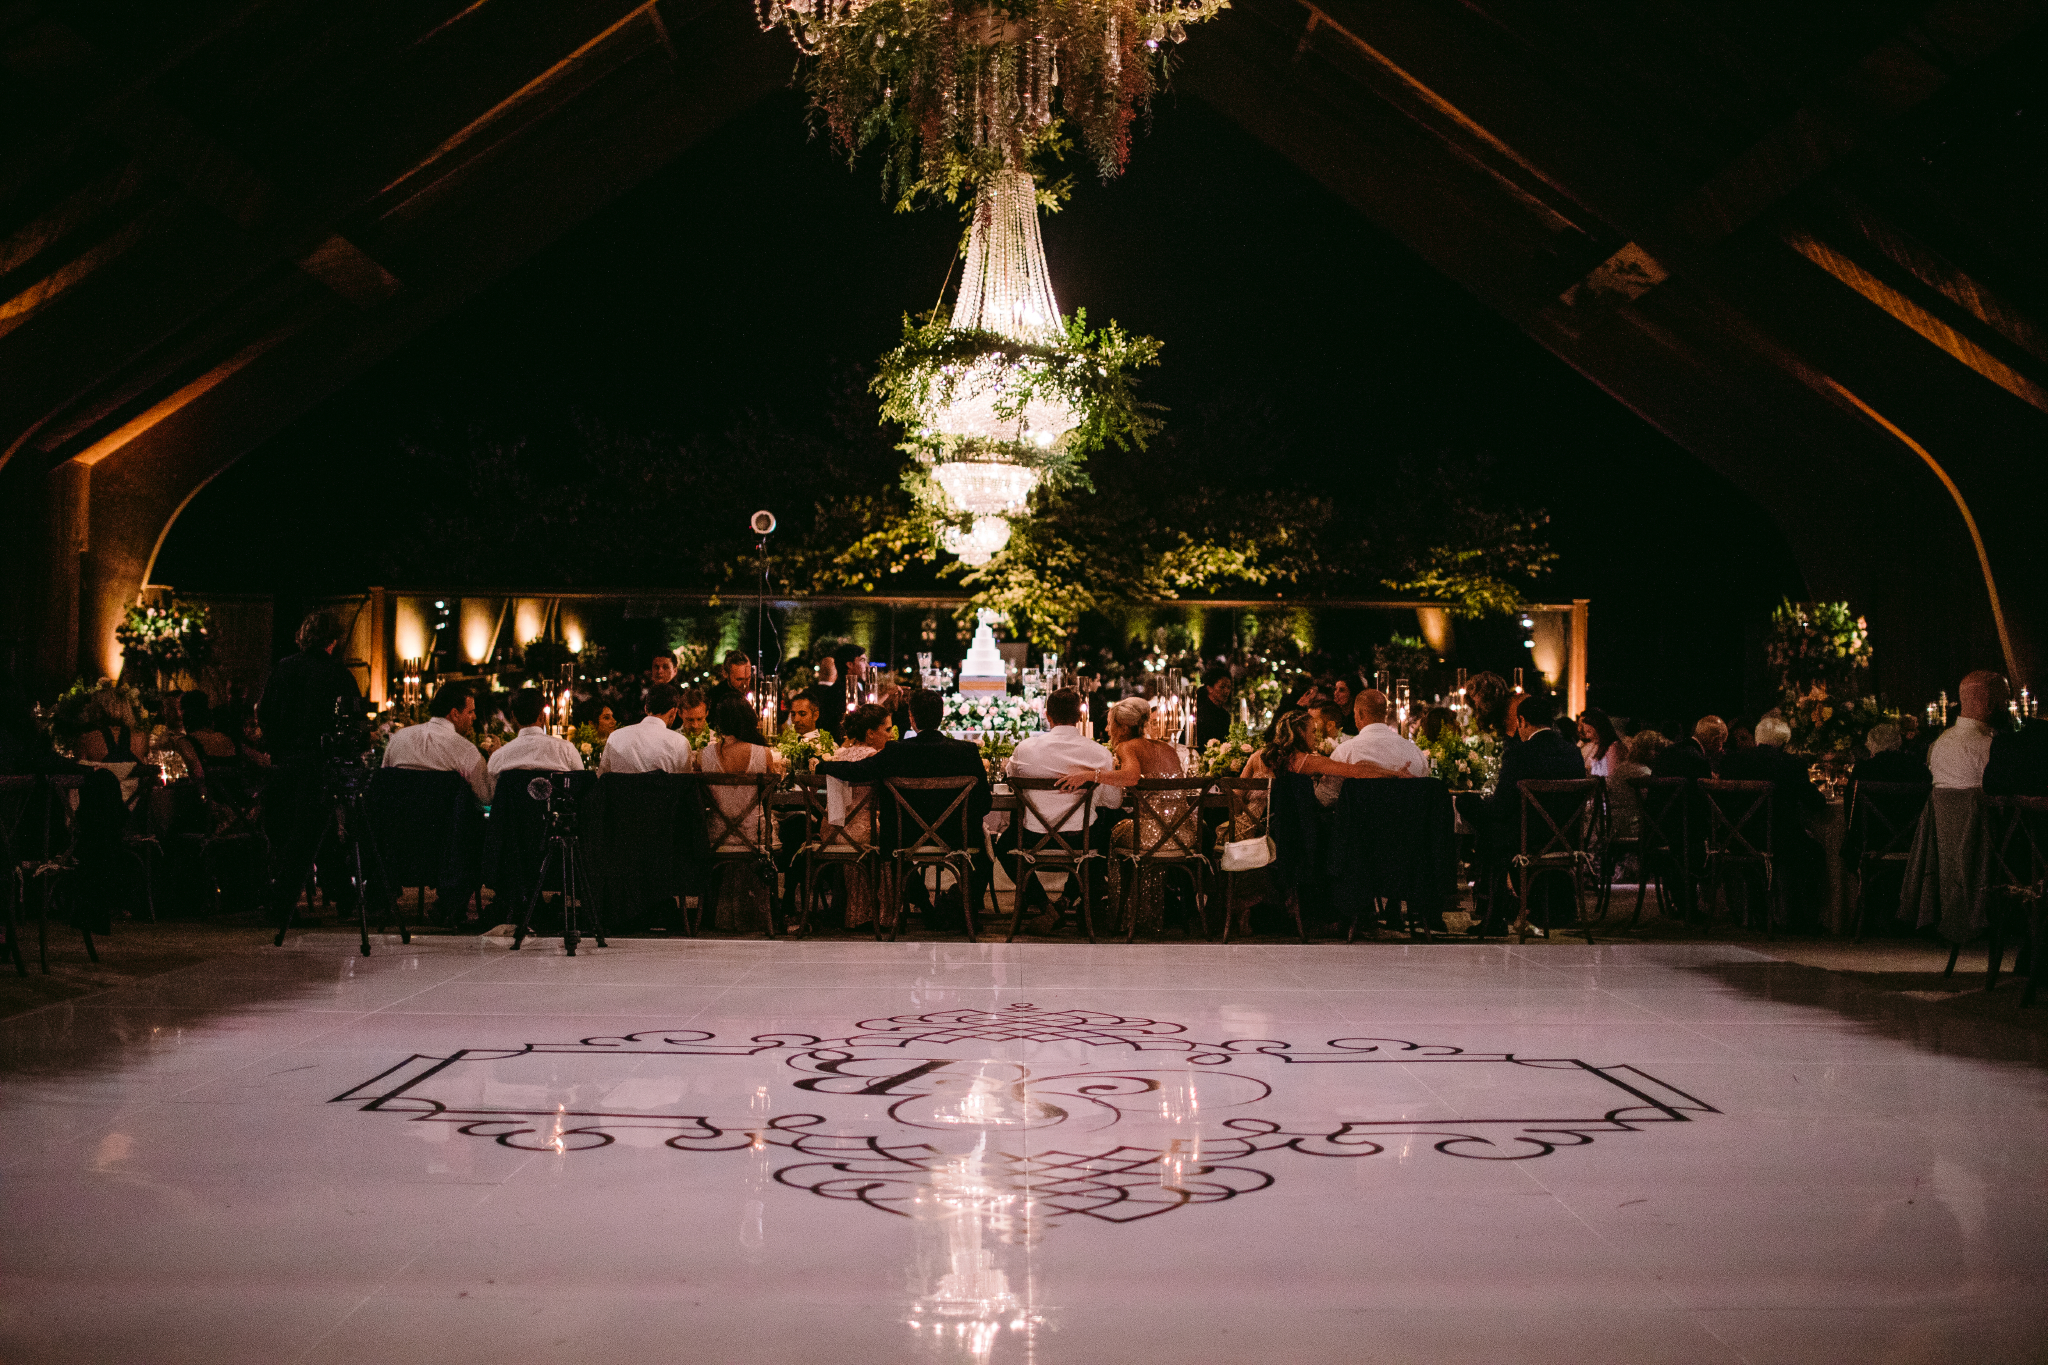 san diego wedding   photographer | view of dance floor with dining area behind it